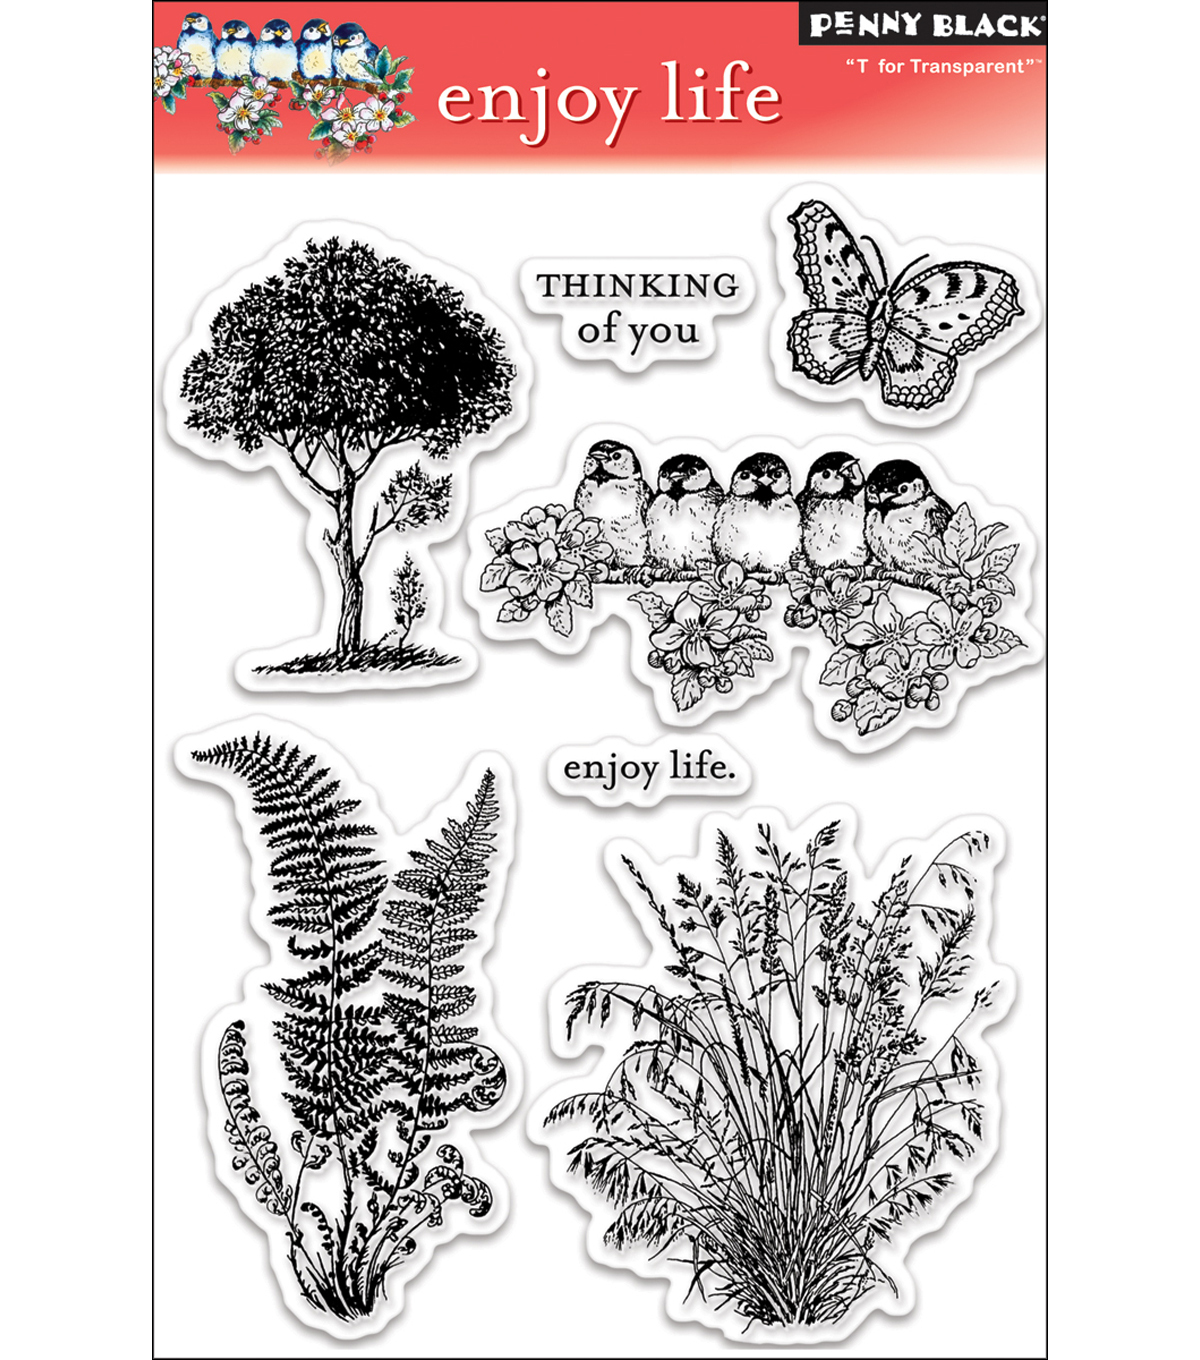 Penny Black Clear Stamp 5\u0022X7.5\u0022 Sheet-Enjoy Life